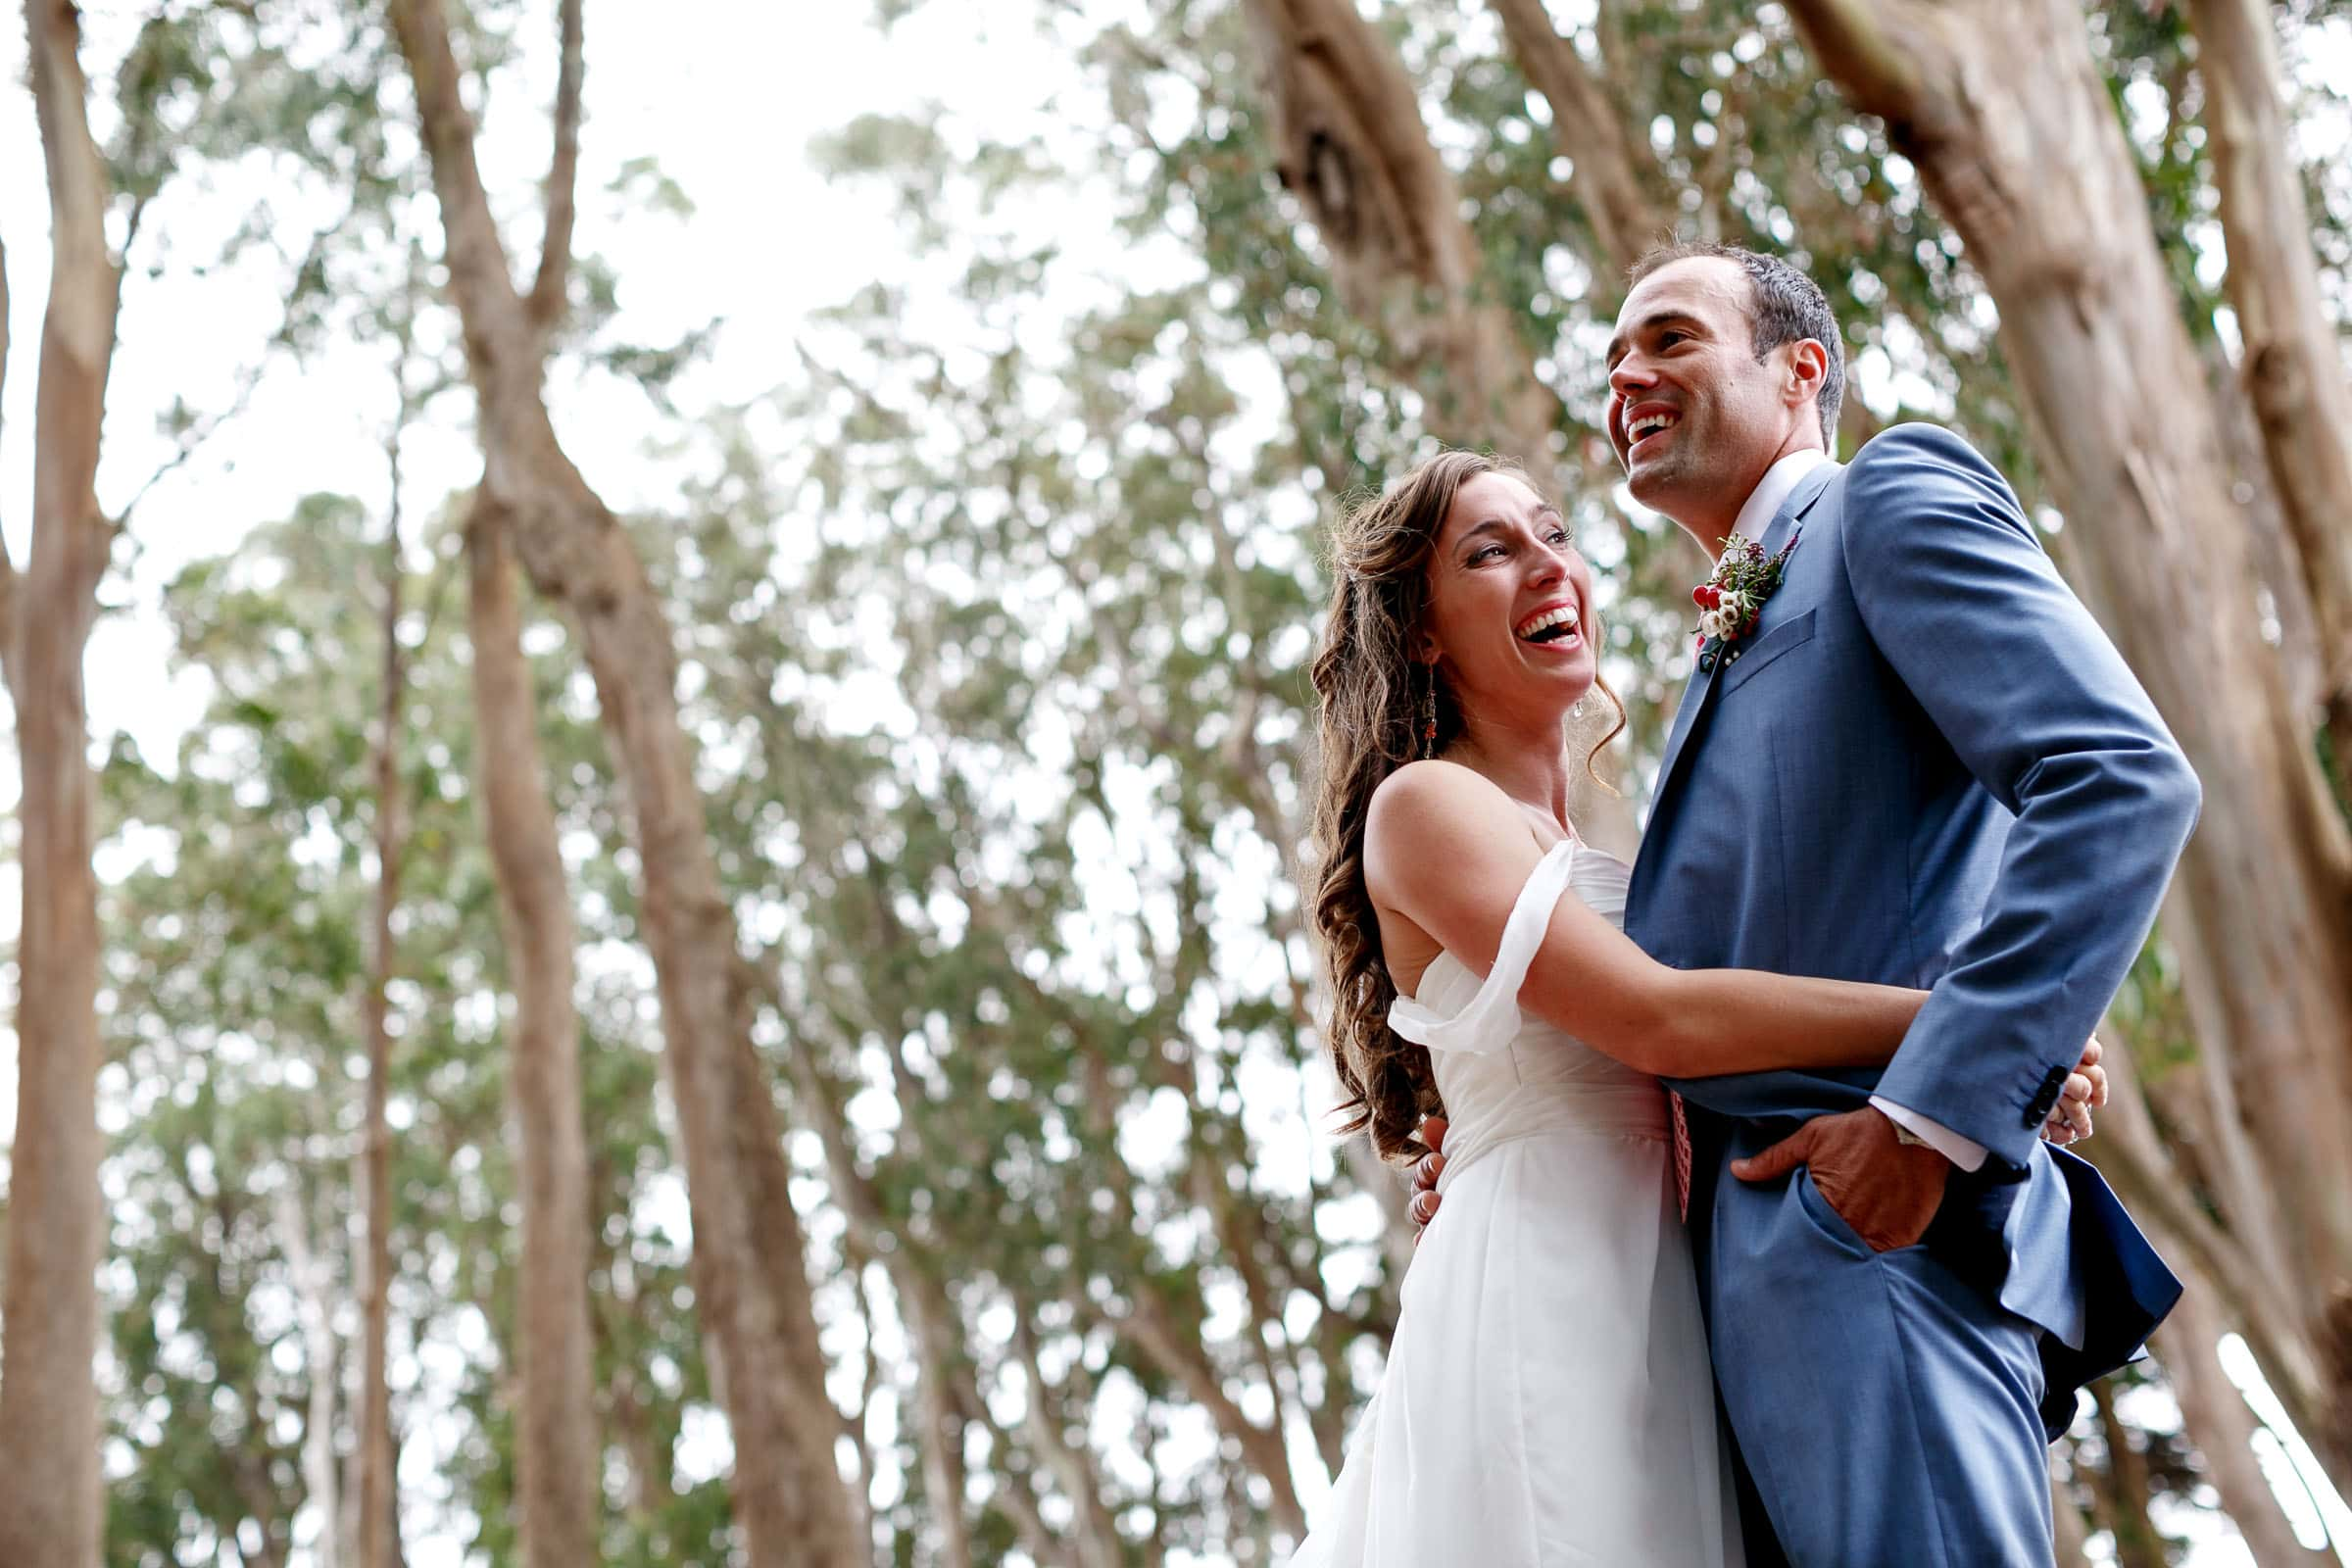 A happy bride and groom in massive eucalyptus trees during their Mendocino Coast wedding at Spring Ranch